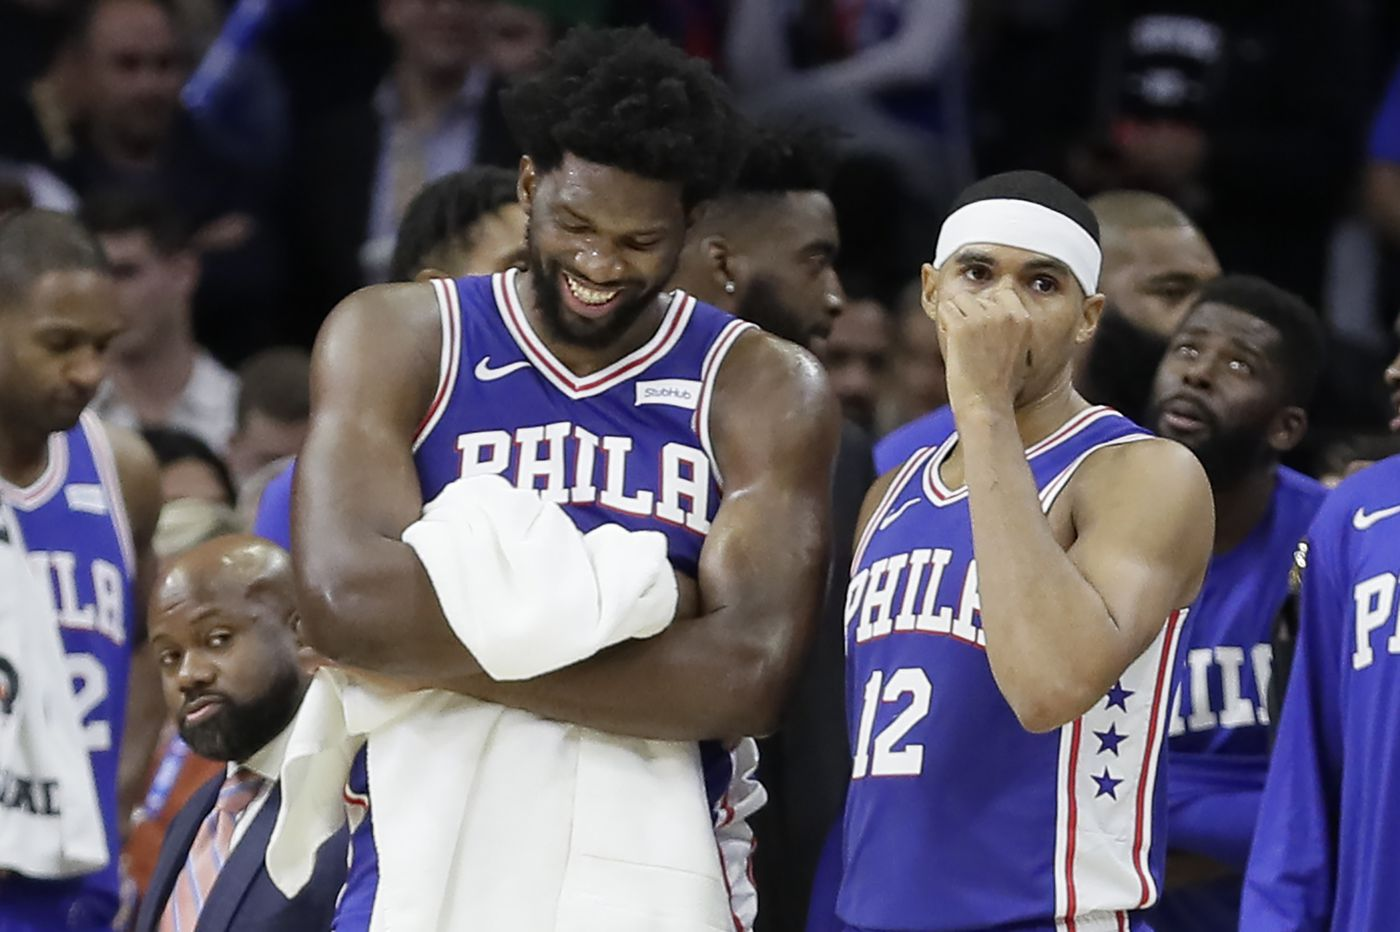 Sixers' Joel Embiid' Minnesota's Karl-Anthony Towns suspended two games each for brawl